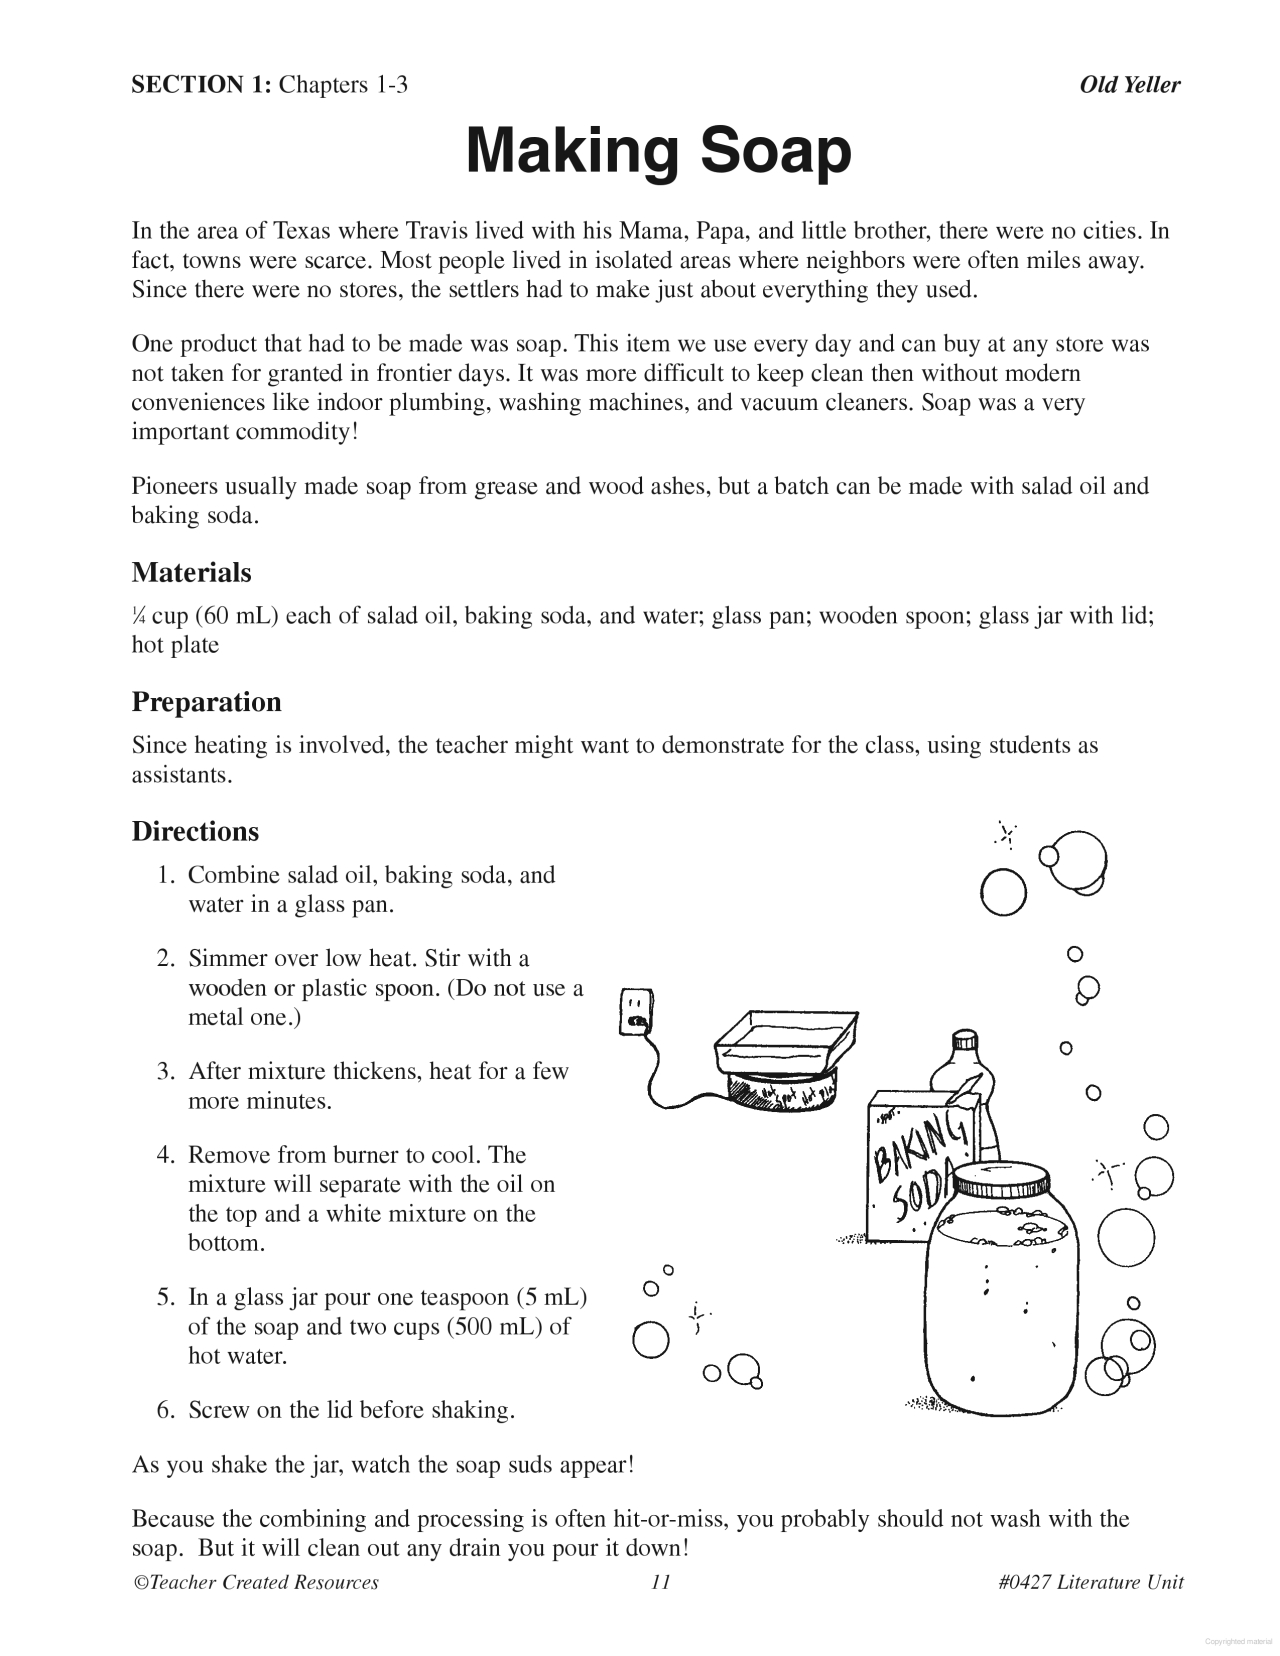 Making Soap - Old Yeller | School | Old Yeller, Classroom, 6Th Grade | Old Yeller Printable Worksheets